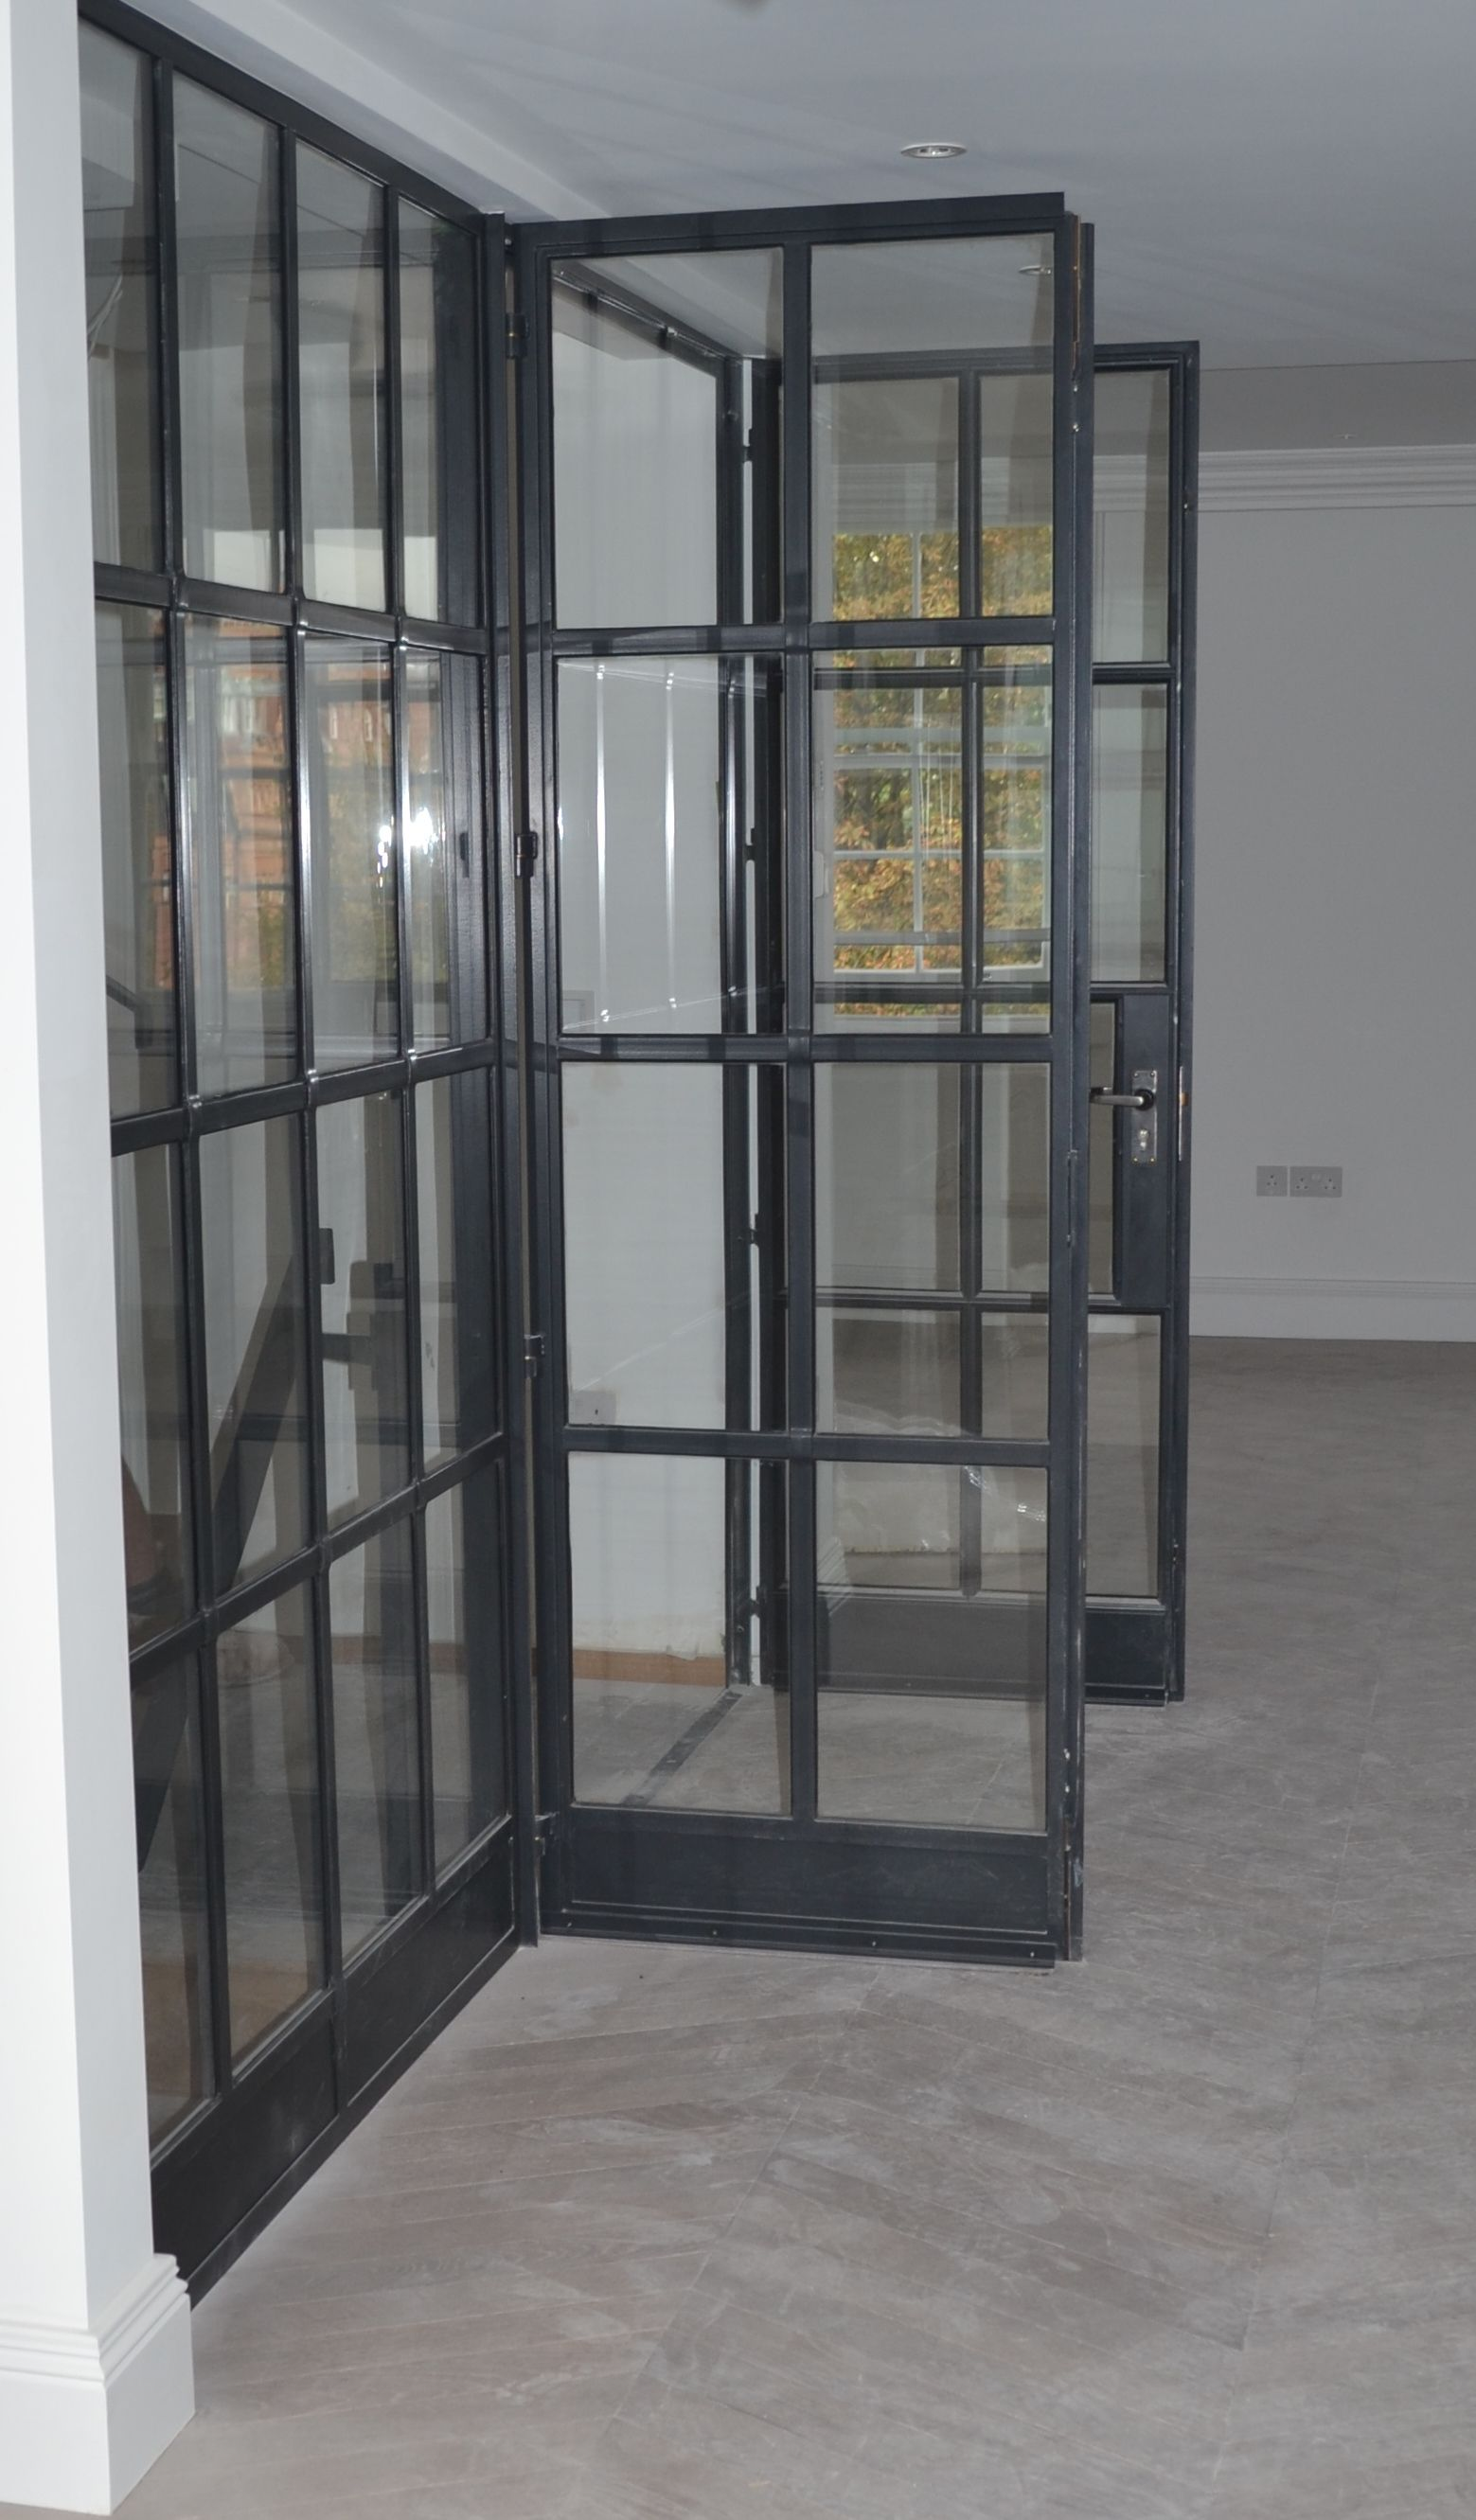 Lightfoot Windows Kent Ltd Internal Crittall Door Screen Featuring Fire Rat